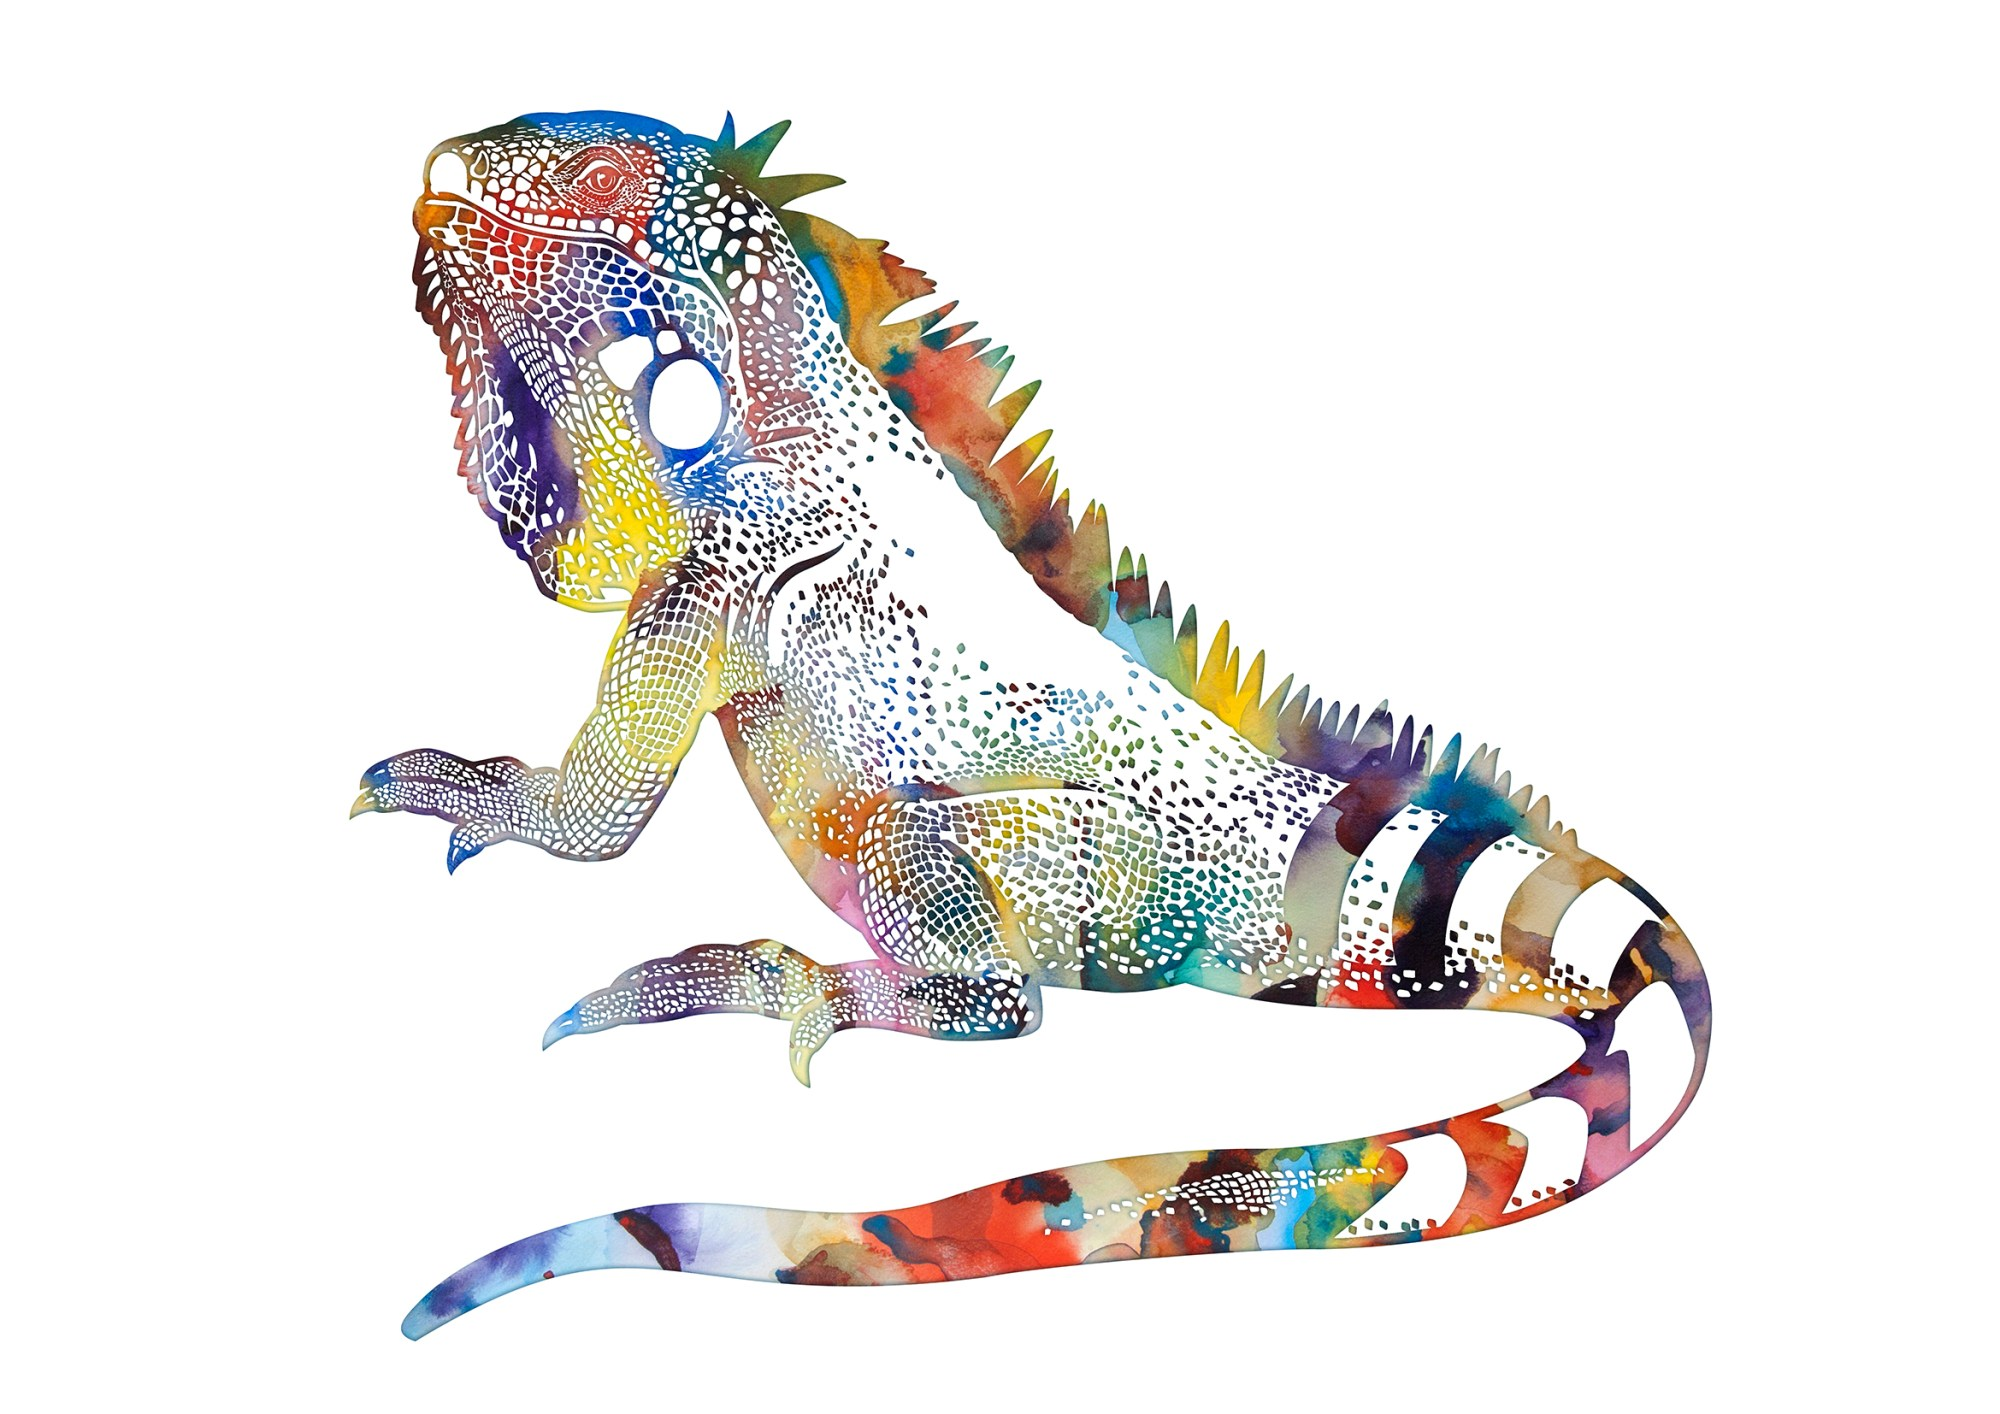 hight resolution of iguana downloadable picture watercolor poster by artollo